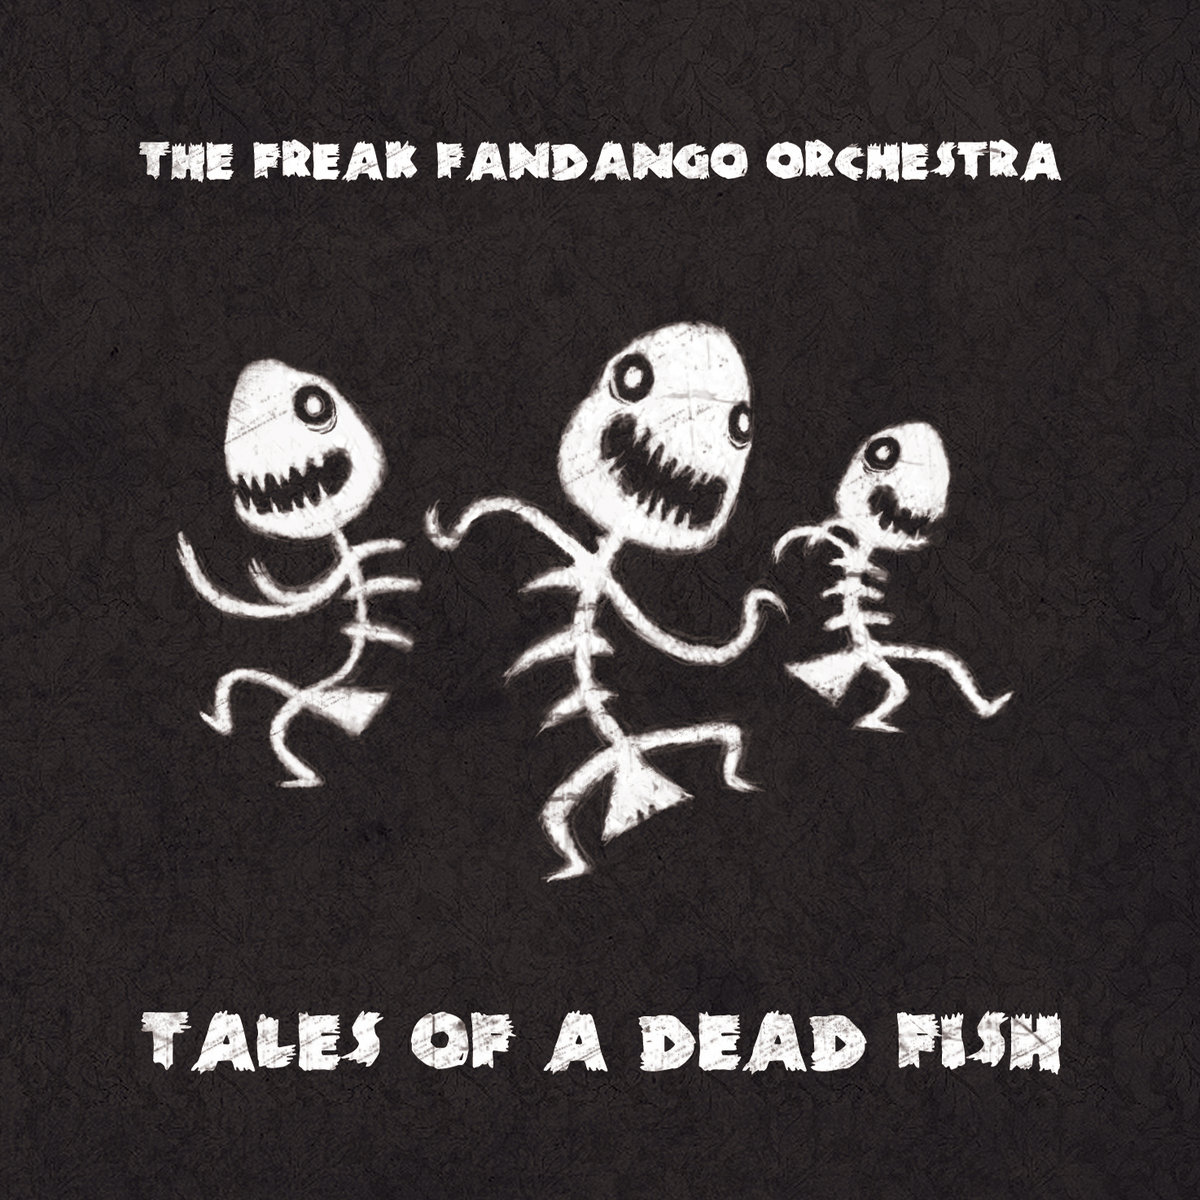 The Freak Fandango Orchestra – Tales of a dead fish